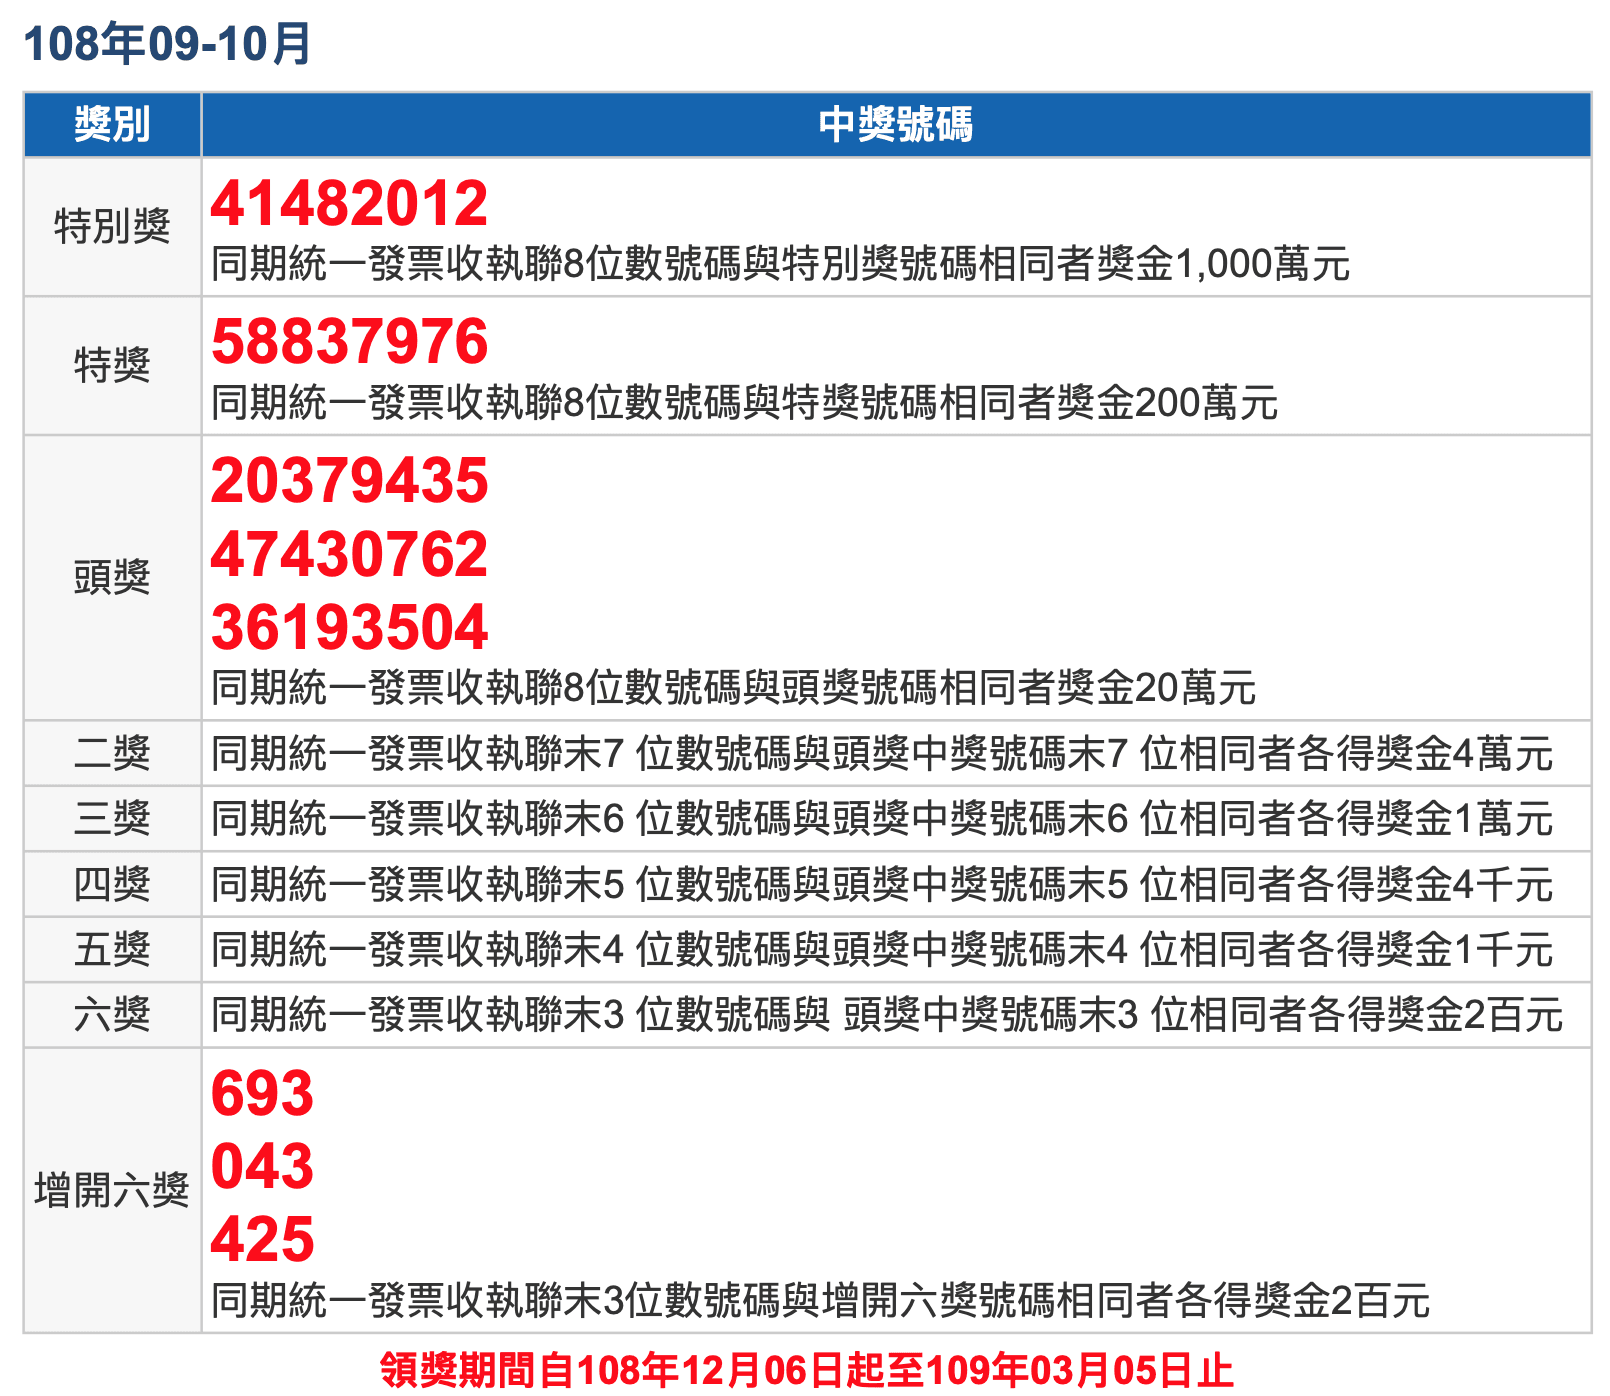 Uniform invoice winning numbers Taiwan Penghu Kinmen Matsu Republic of China September October 2019 民國 108 年 9、10 月統一發票號碼中獎號碼、獎金兌獎說明 2019